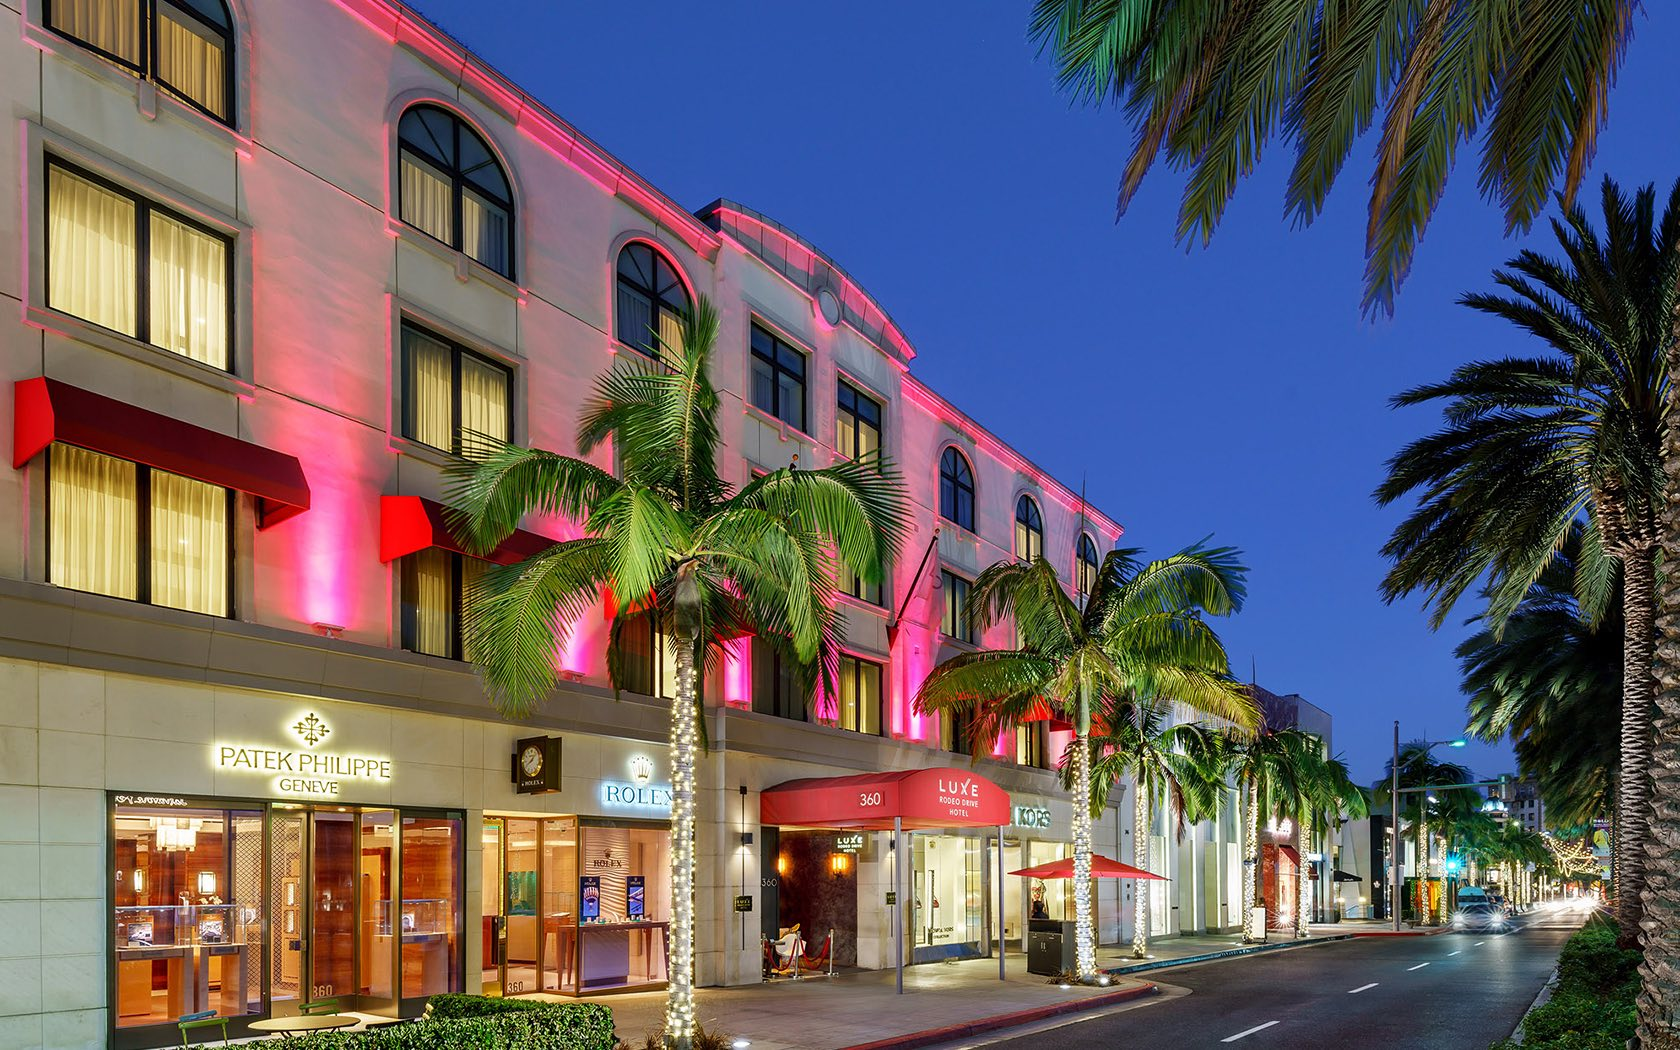 Beverly Hills Hotels View Our Photos Luxe Rodeo Drive